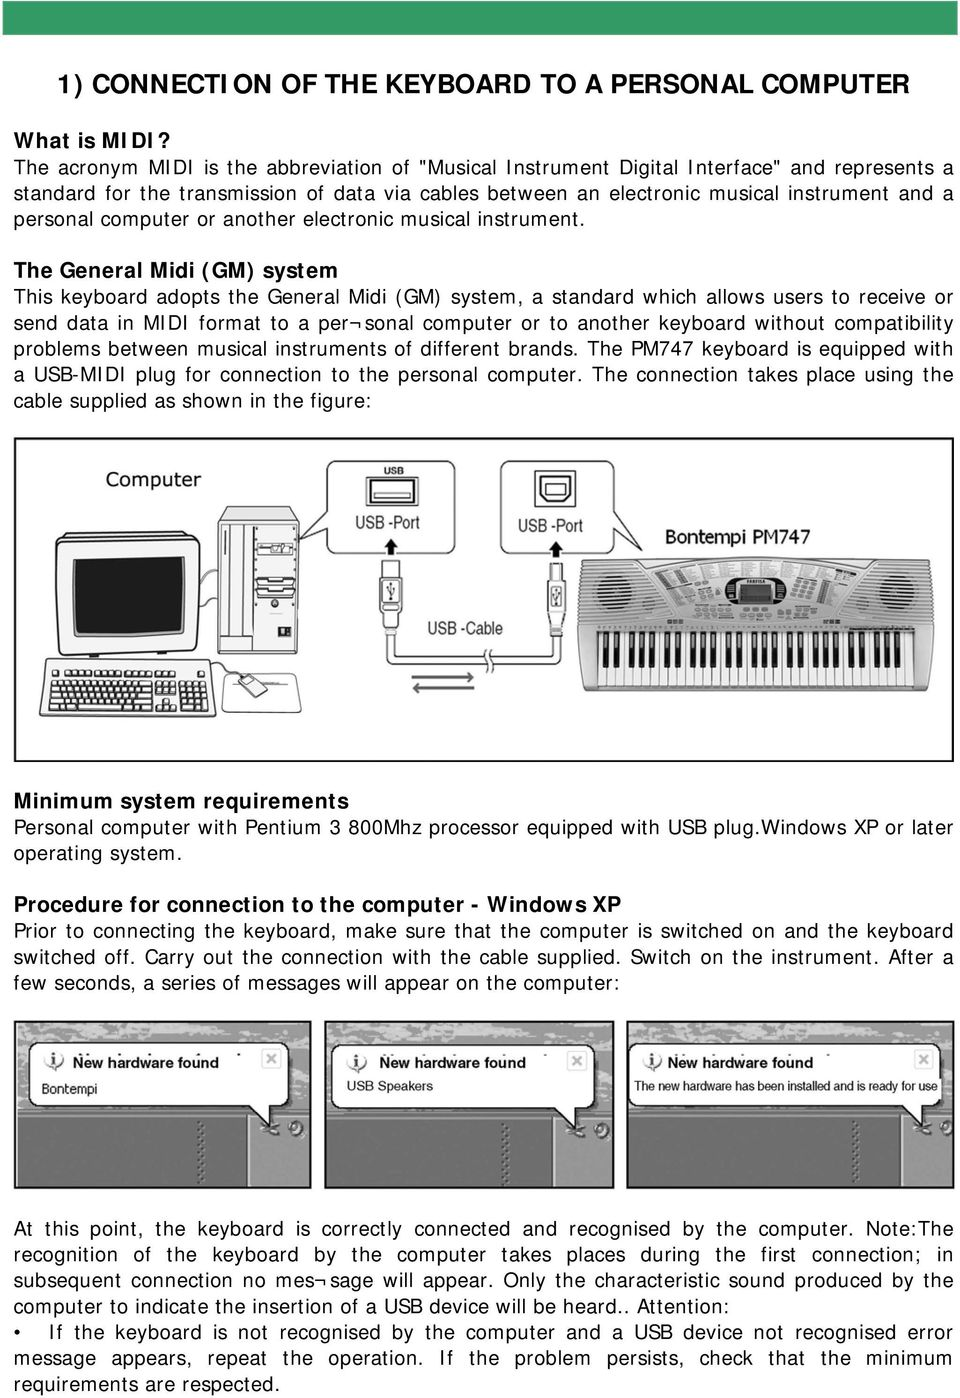 Quick Manual to use Bontempi keyboards with the Computer - PDF